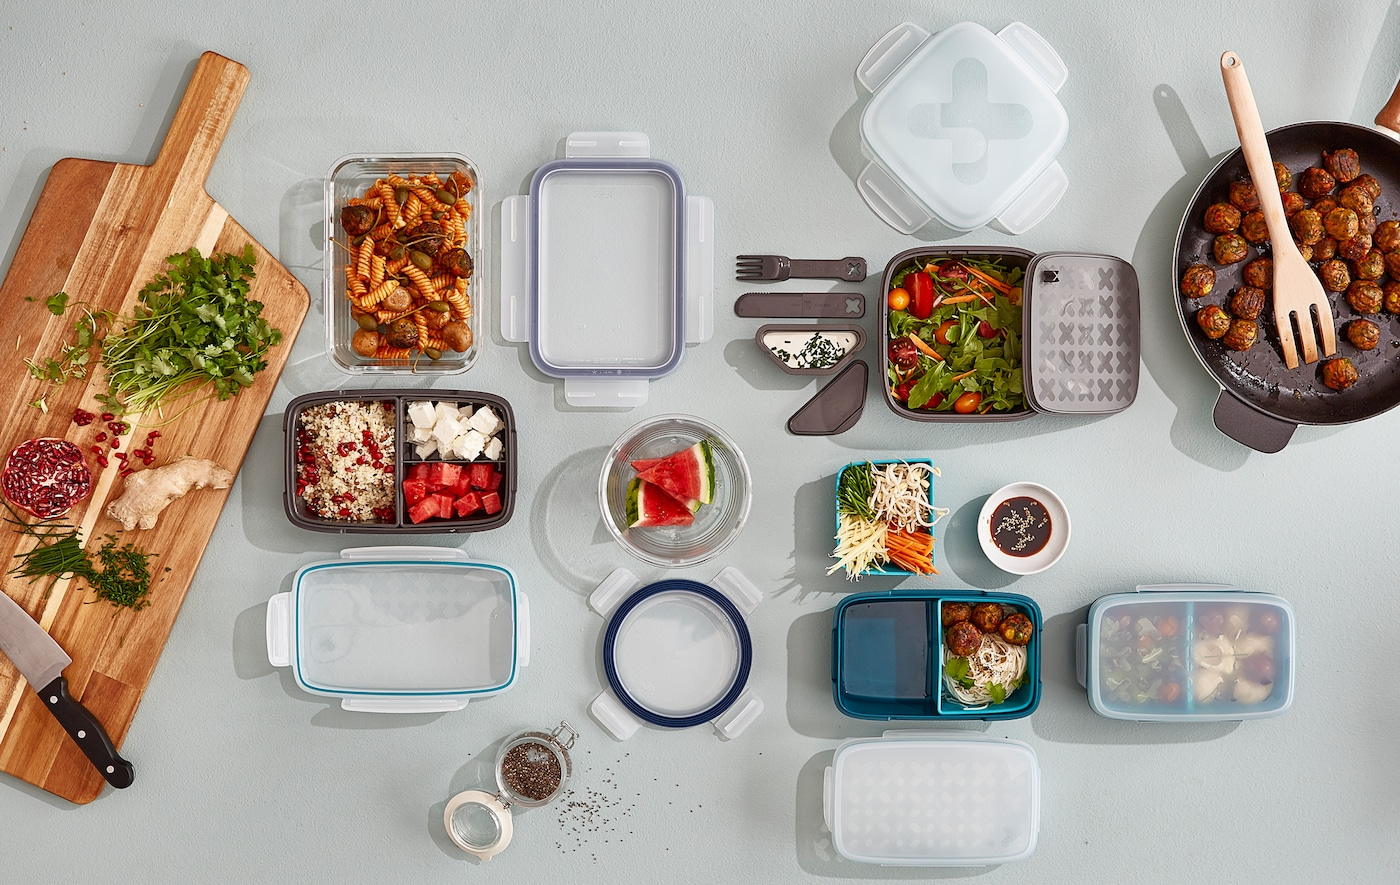 A selection of lunch boxes being prepared with lunch snacks, alongside a frying pan and chopping board.